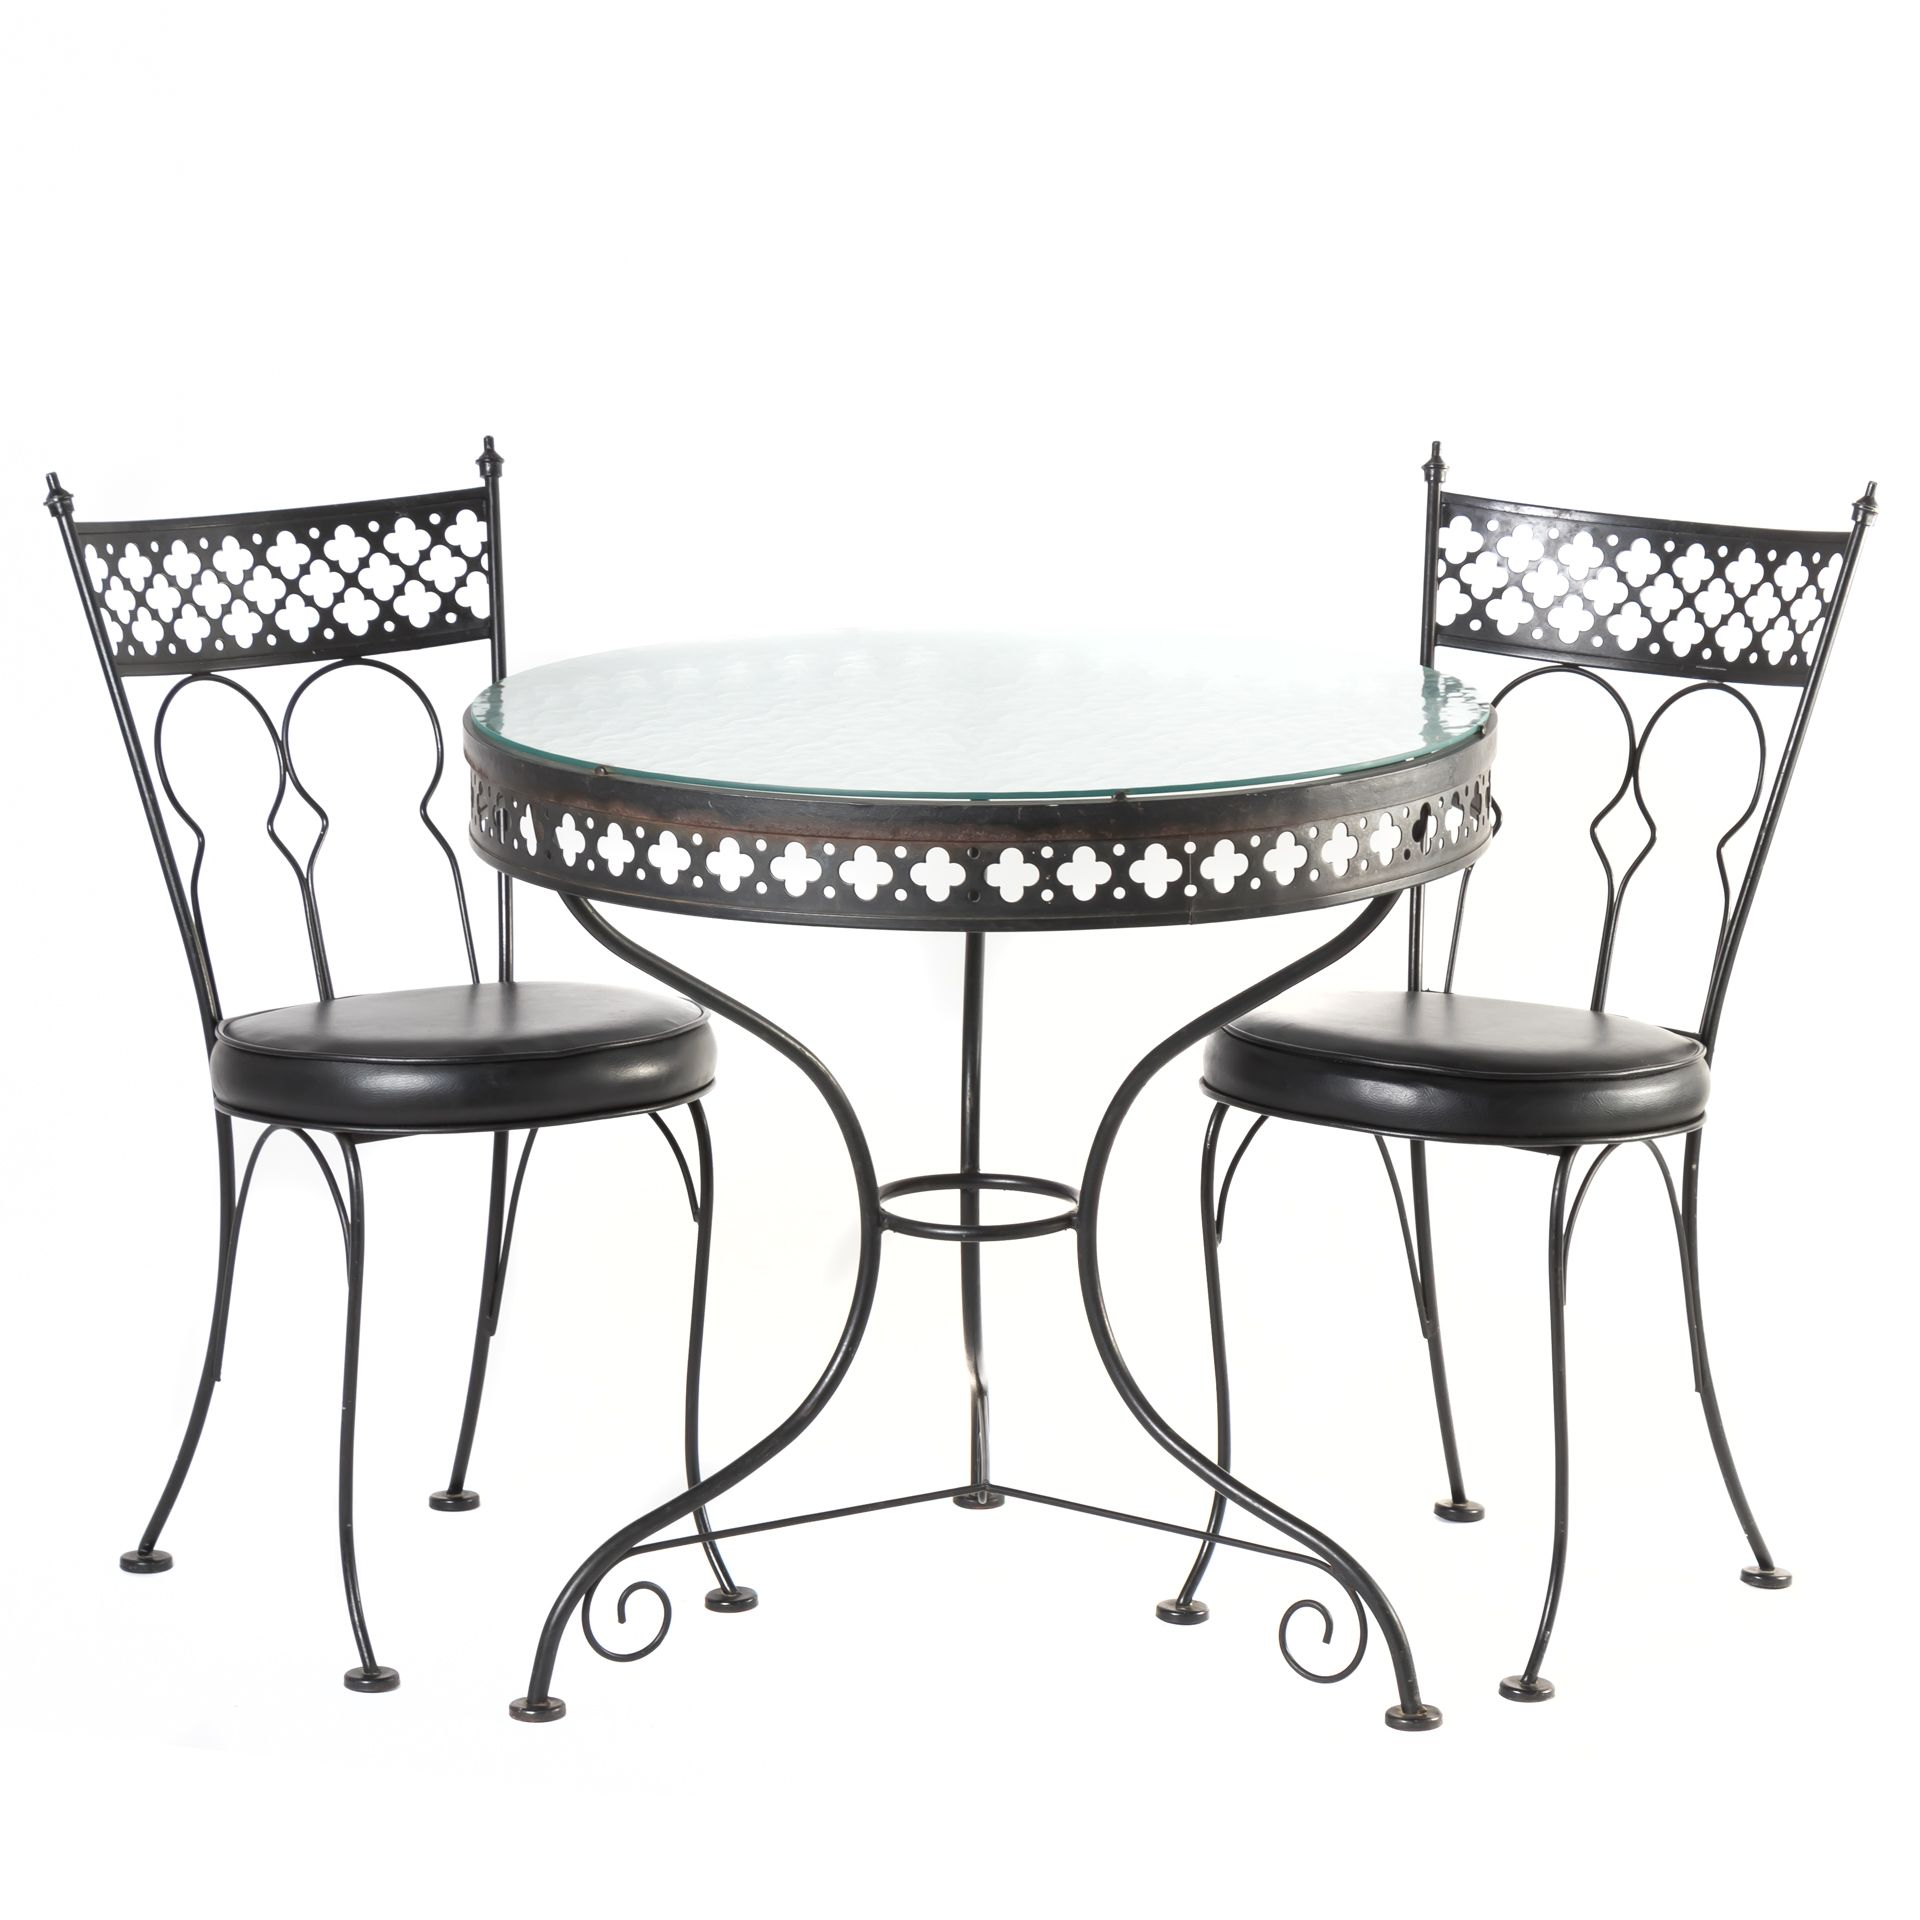 Charming Wrought Iron Bistro Table With Two Chairs Stylized